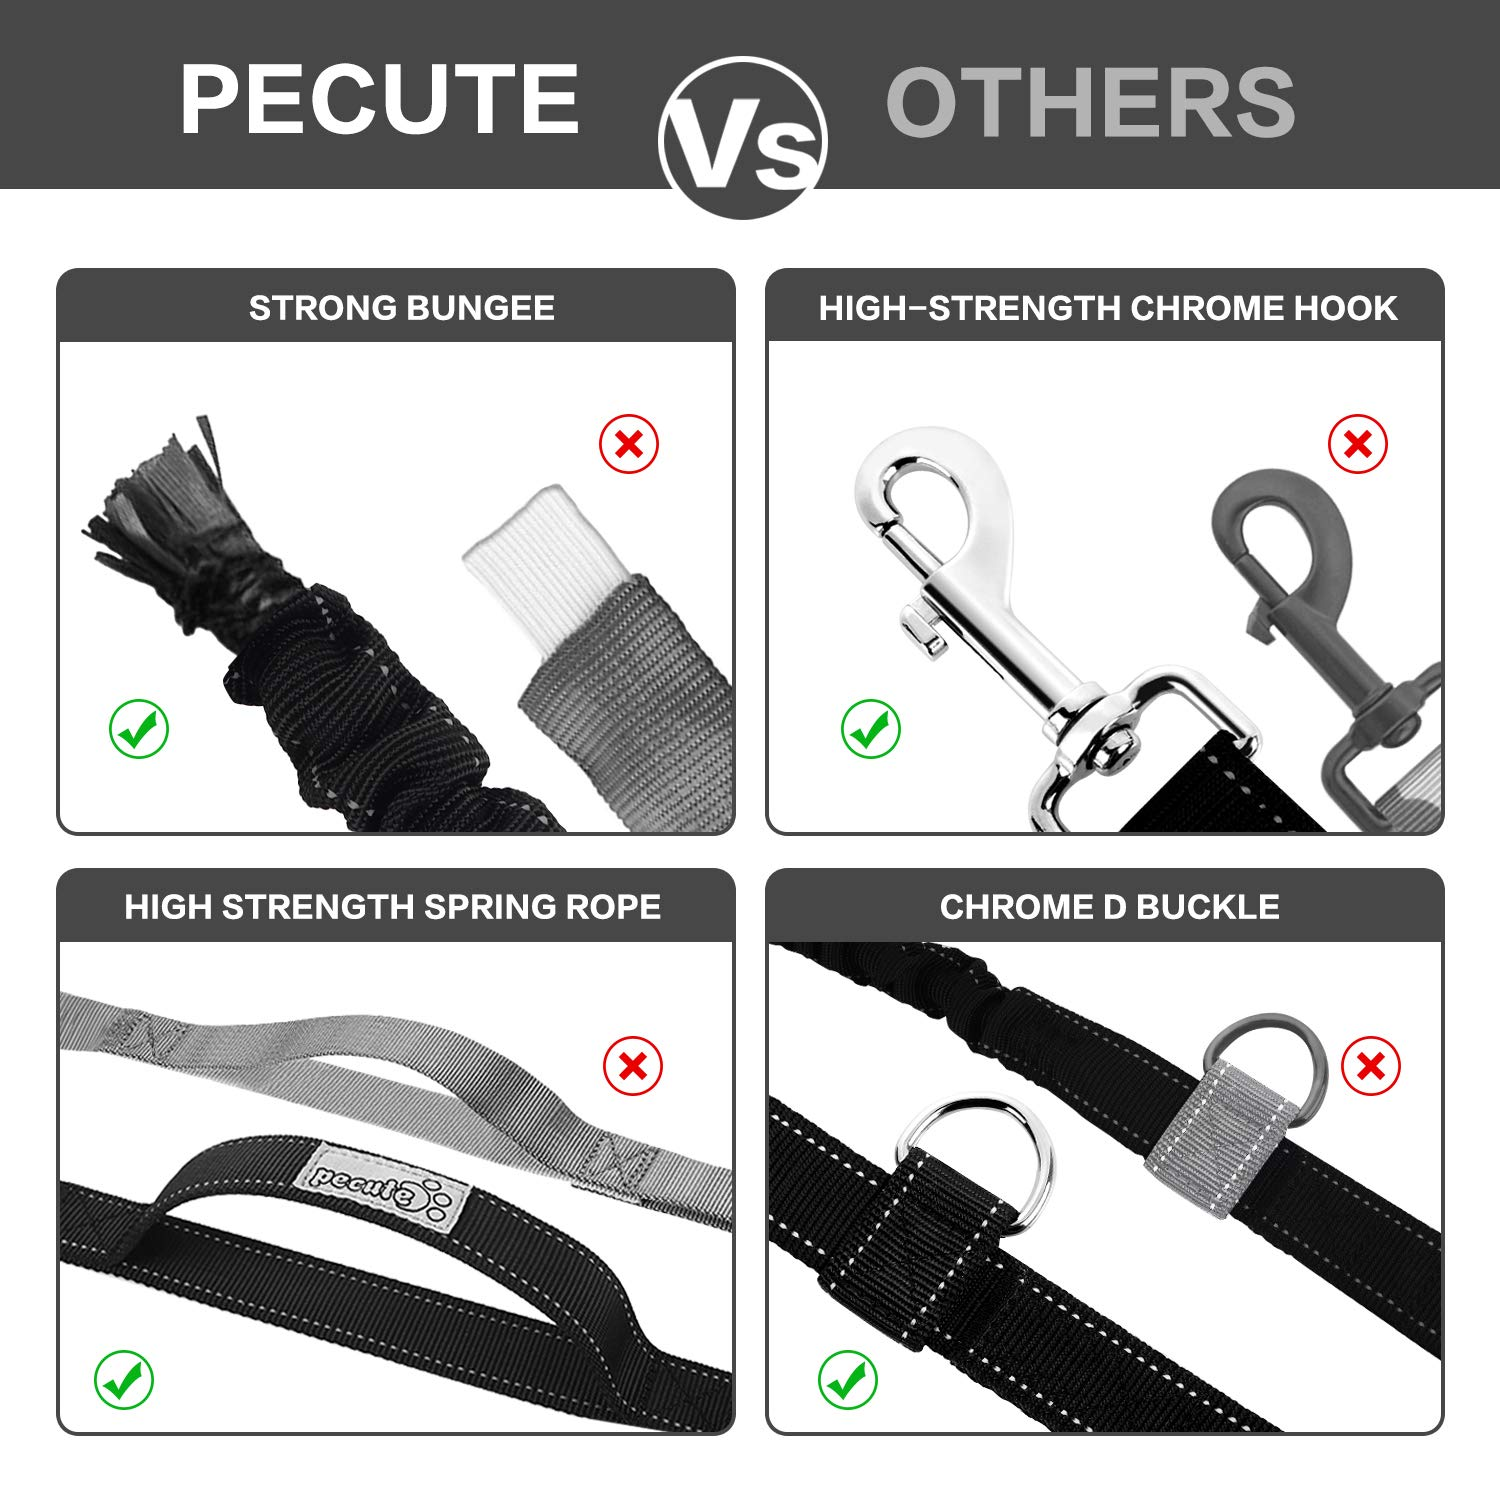 Pecute Hands Free Dog Leads with Waist Bag Strong Bungee Duralble Luminous Reflective Leash for Running Walking Hiking Medium to Large Dogs